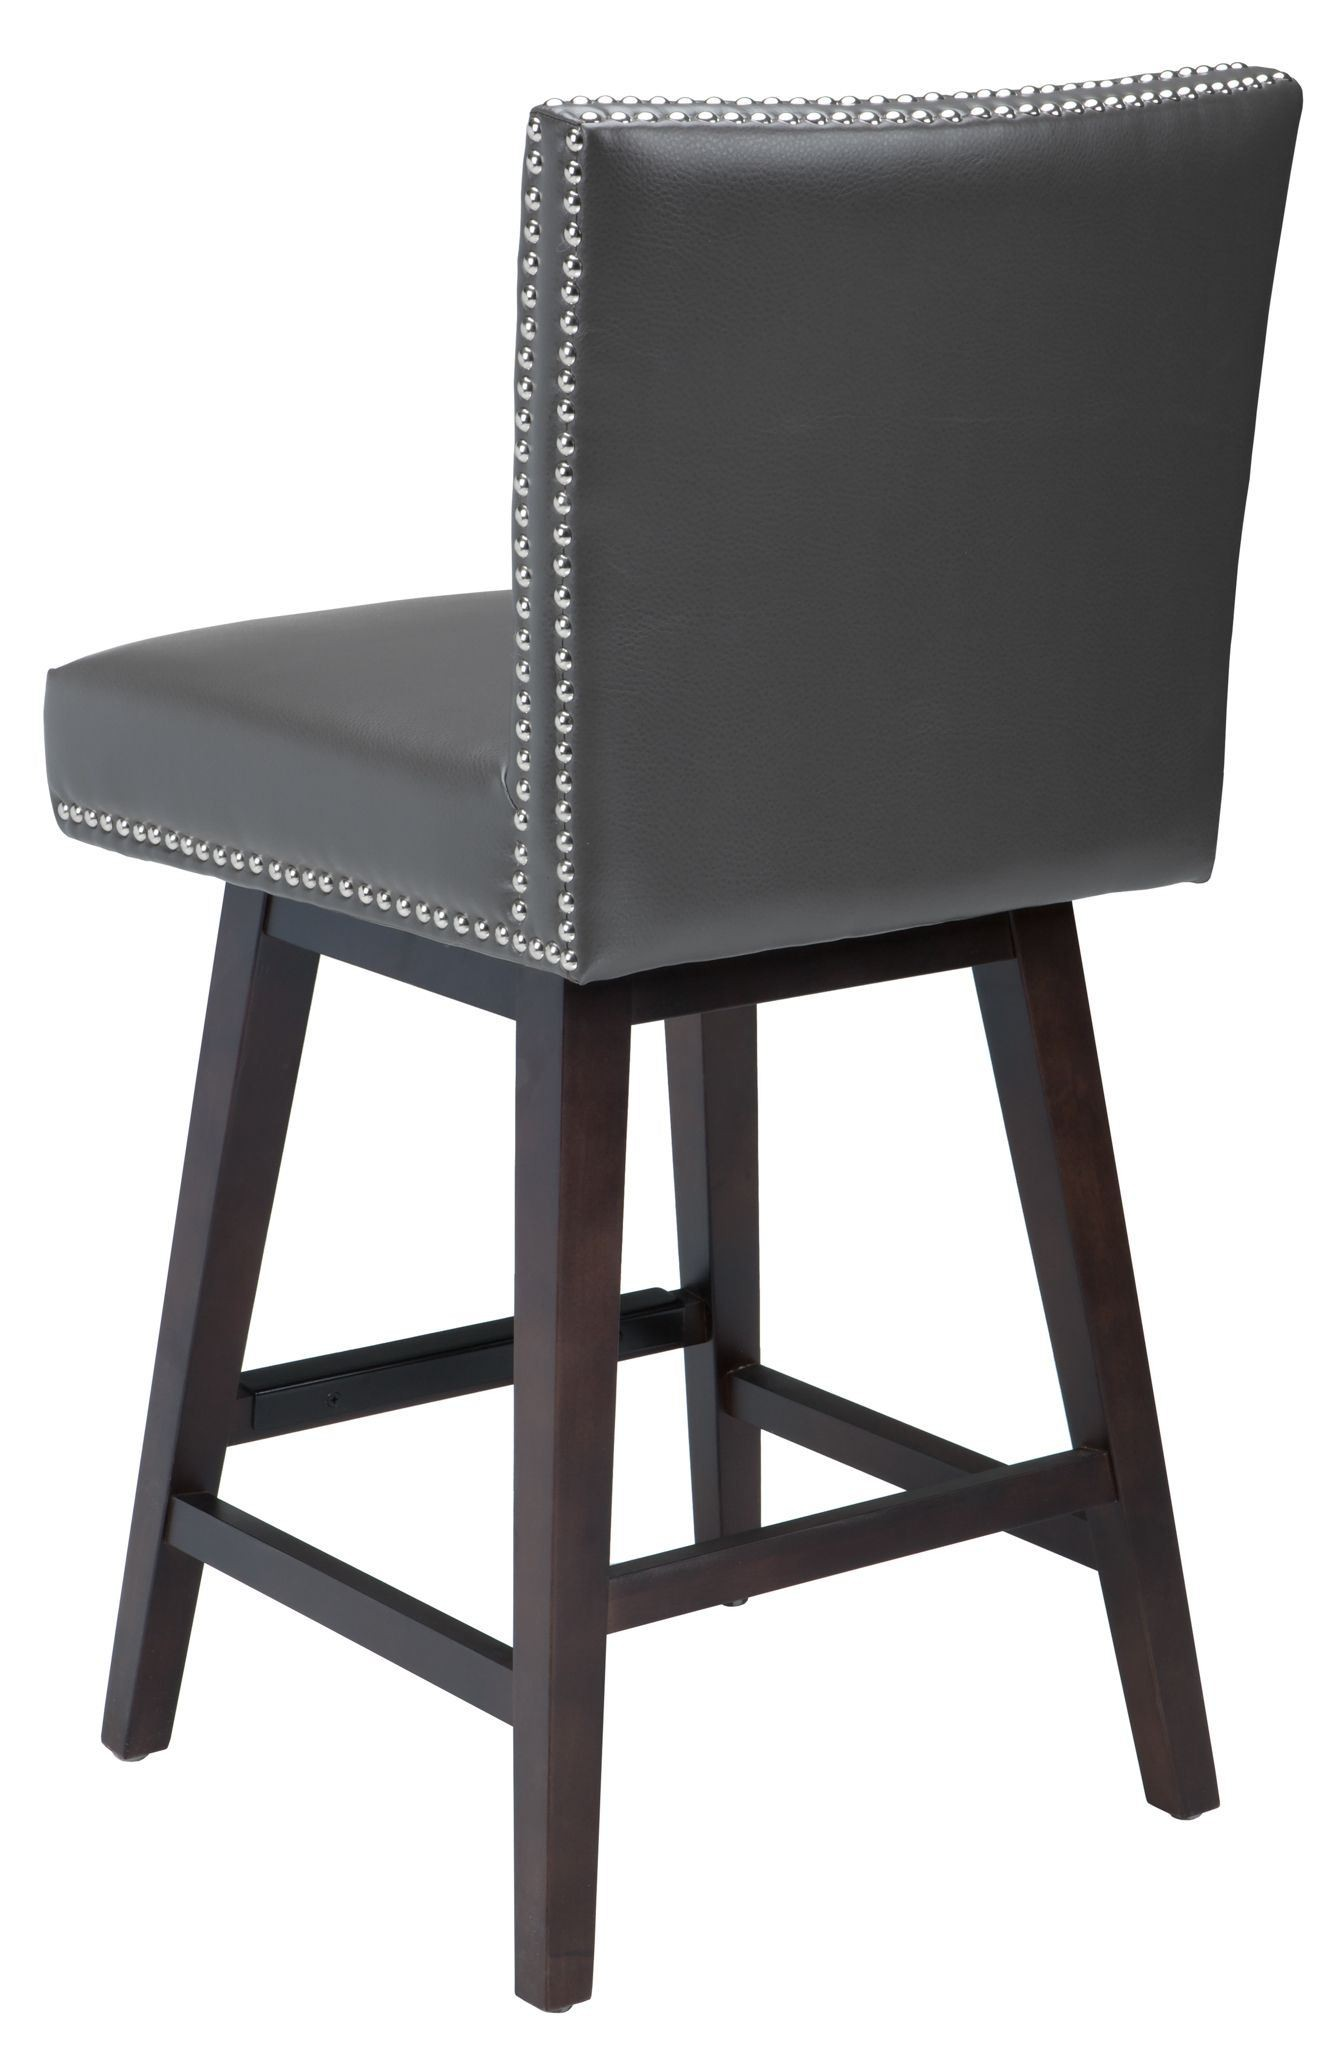 Vintage Grey Swivel Counter Stool From Sunpan 78608